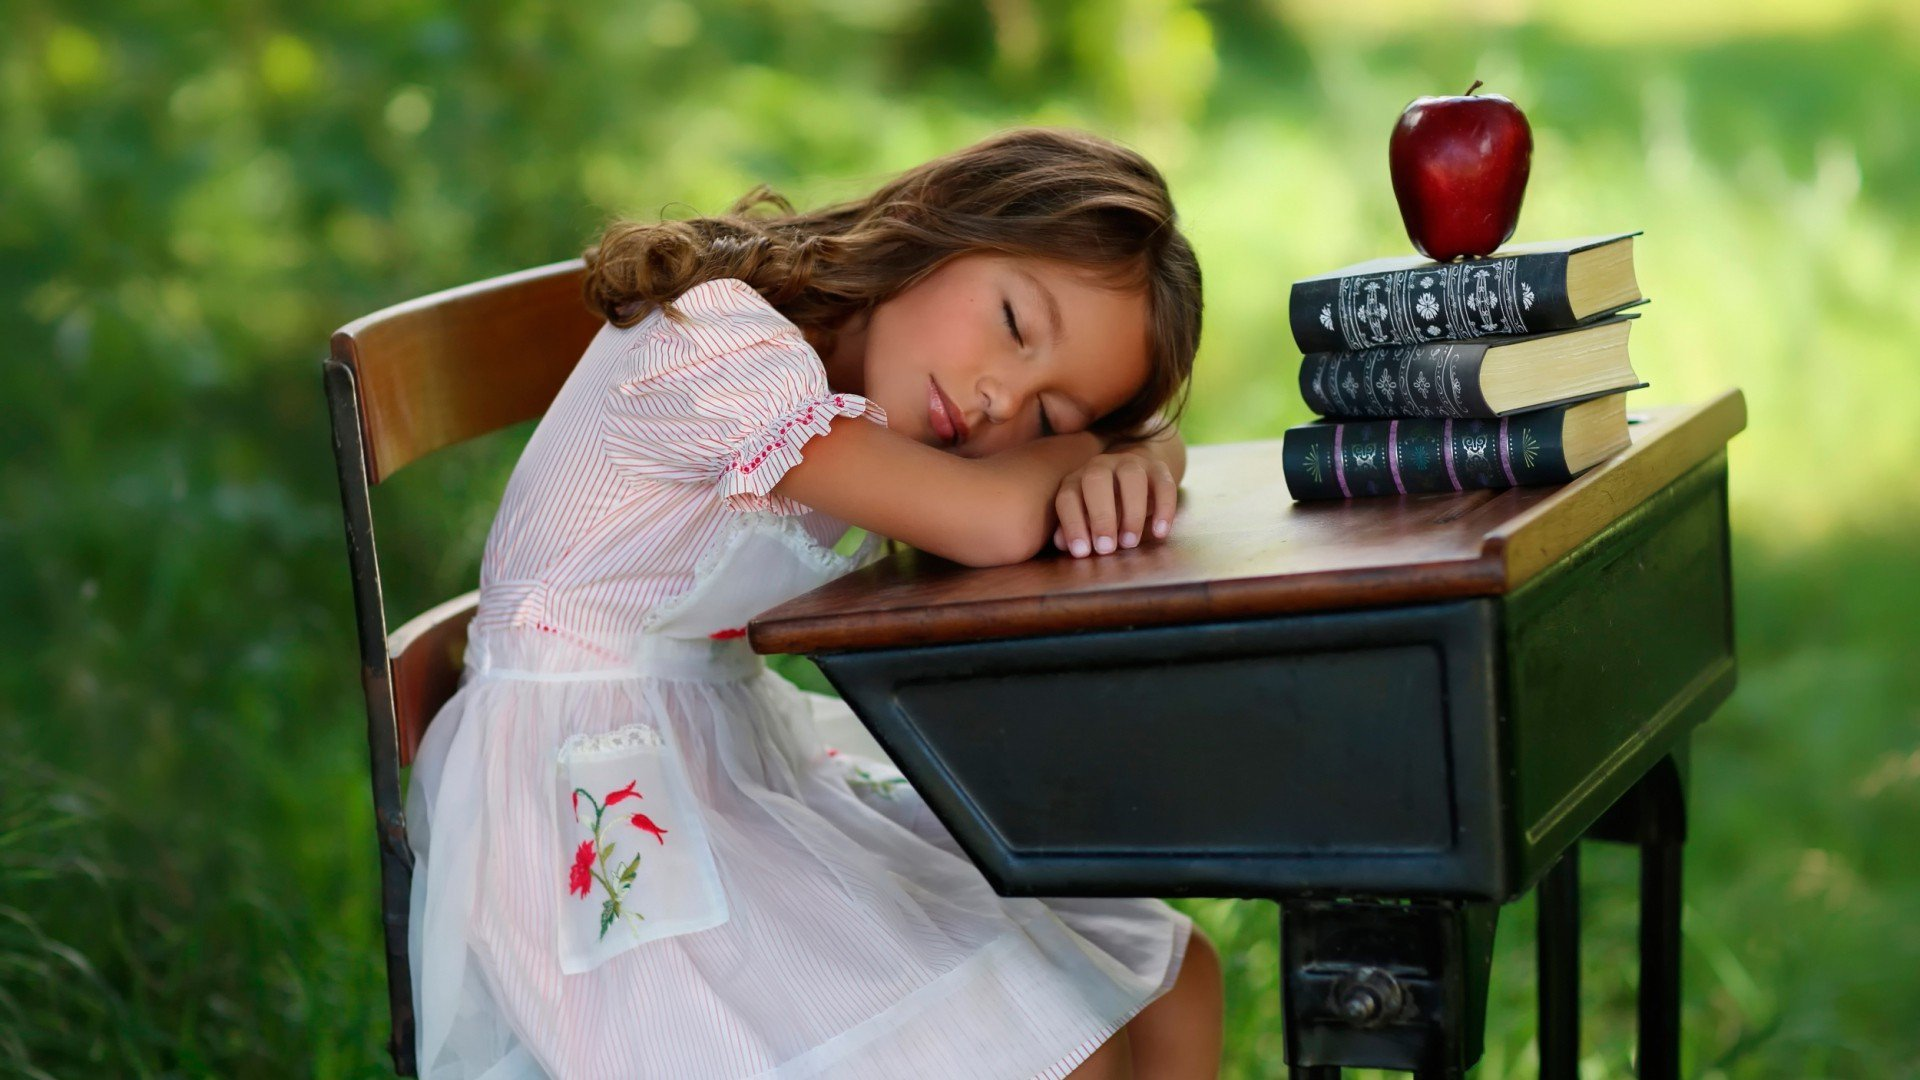 Cute Anime Girl Wallpaper Hd Download Child Sleeping On Table Hd Girls 4k Wallpapers Images